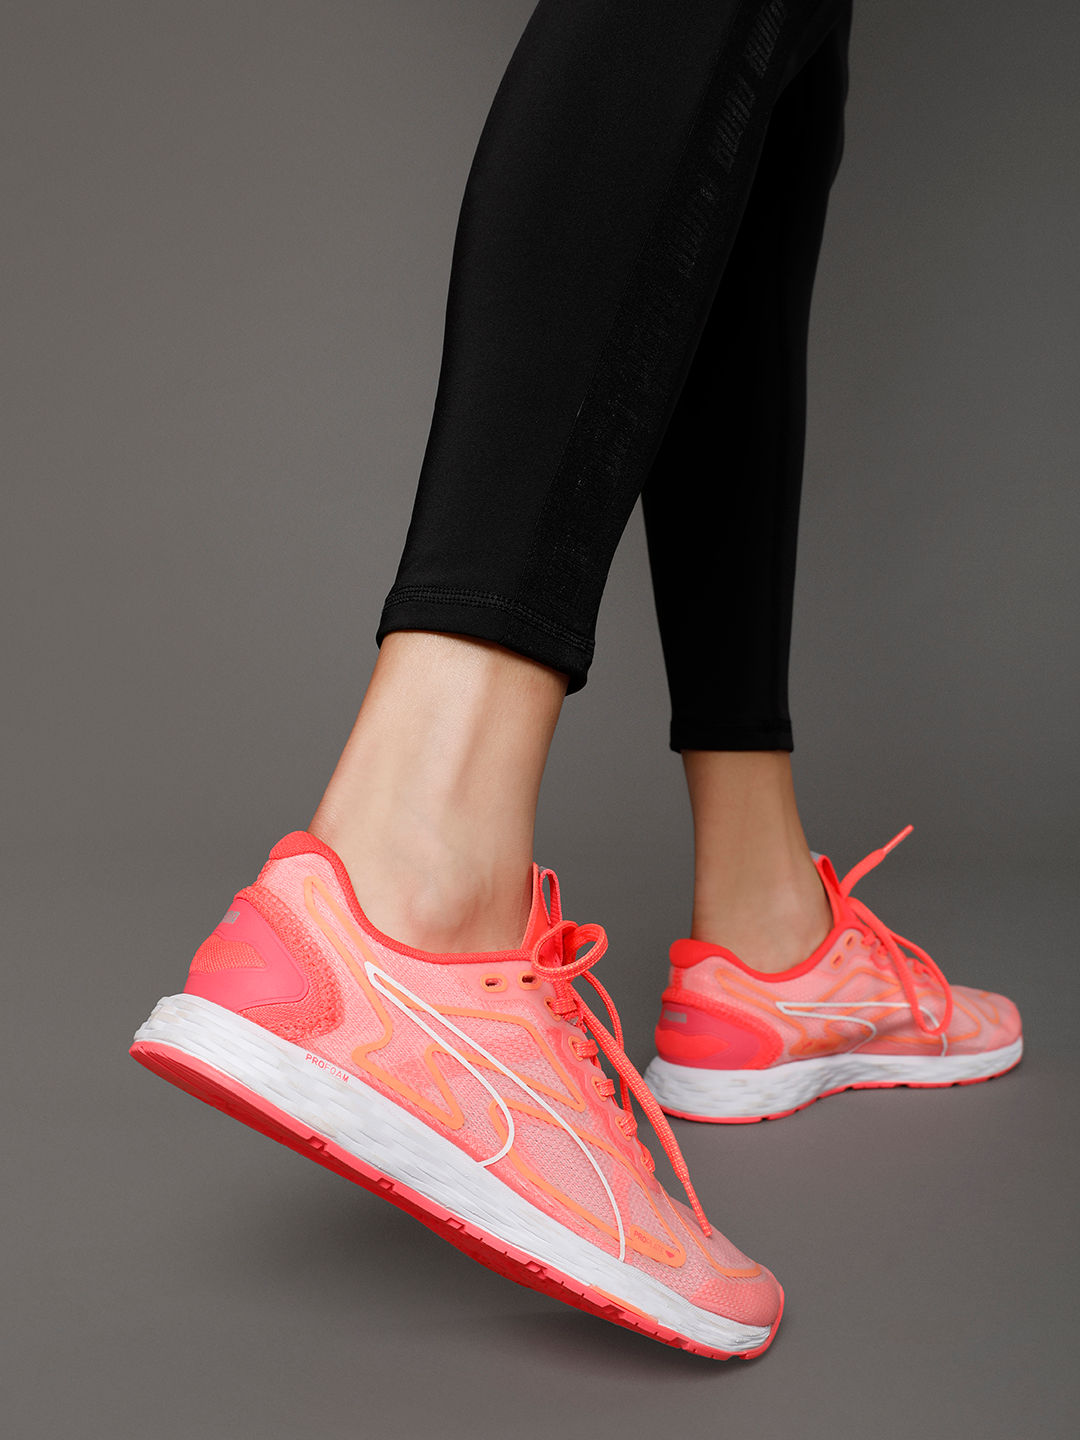 sports shoes 300 price